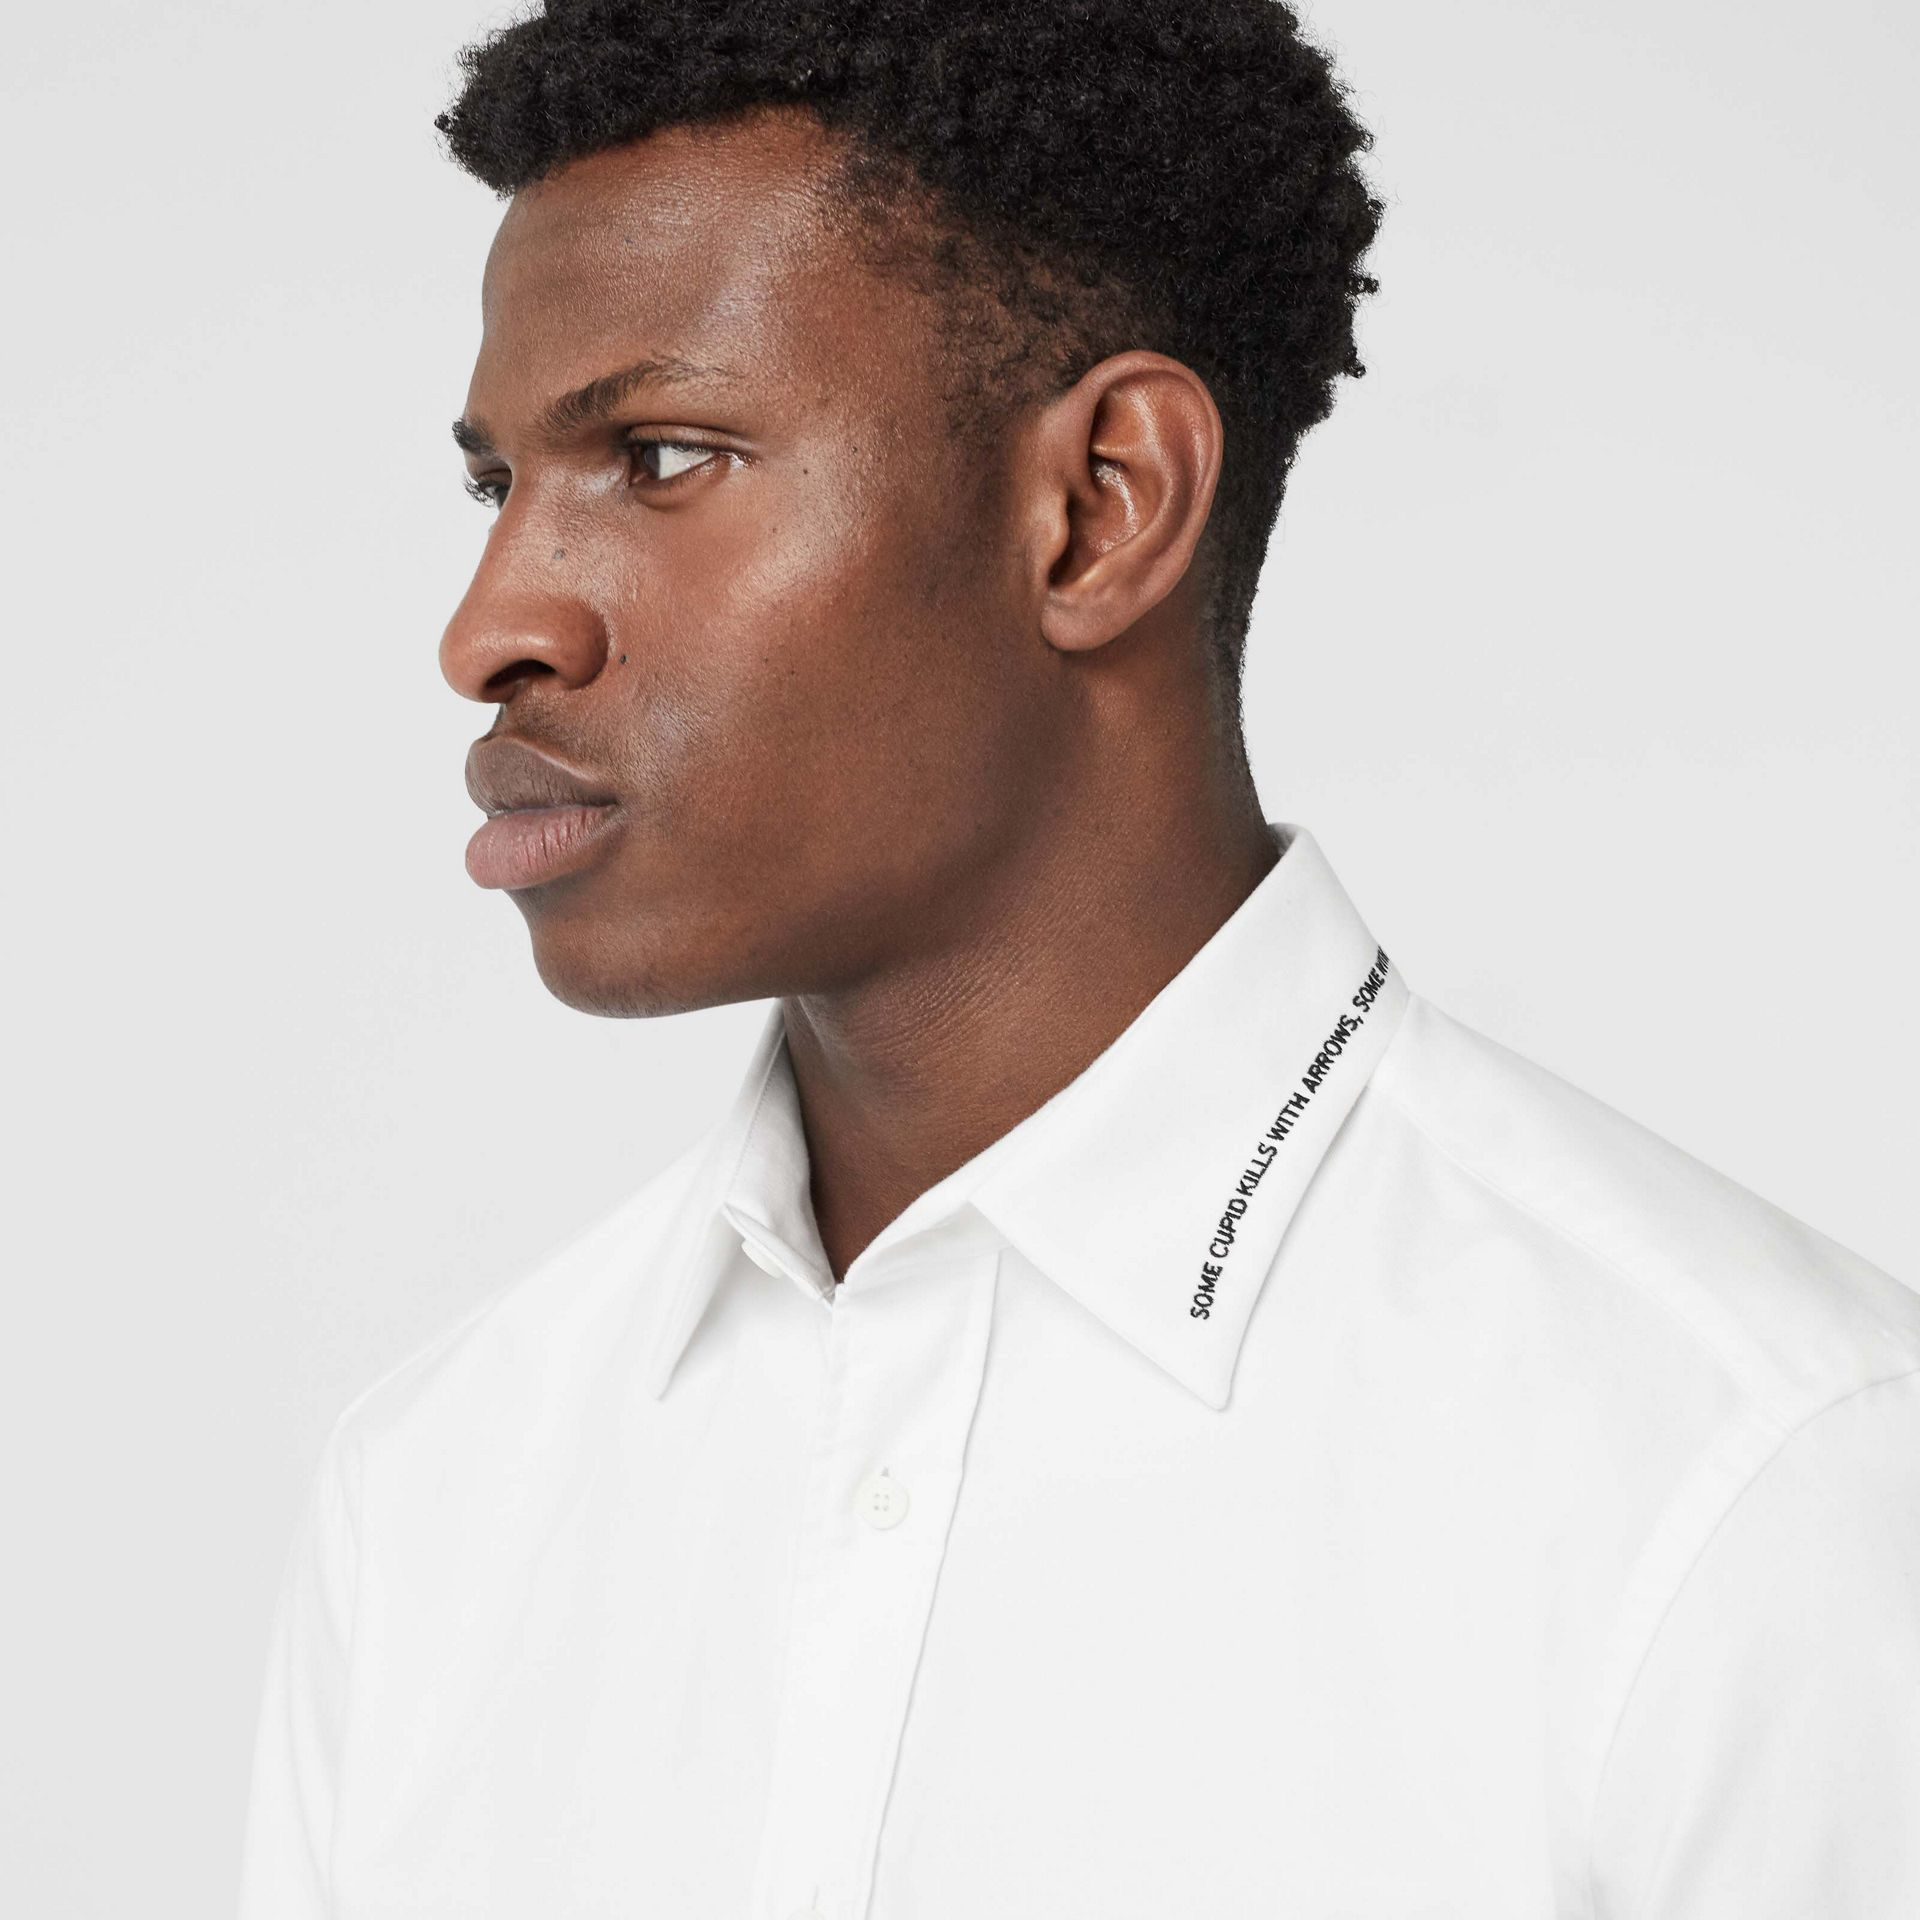 Classic Fit Embroidered Cotton Poplin Dress Shirt in White - Men | Burberry United States - gallery image 4